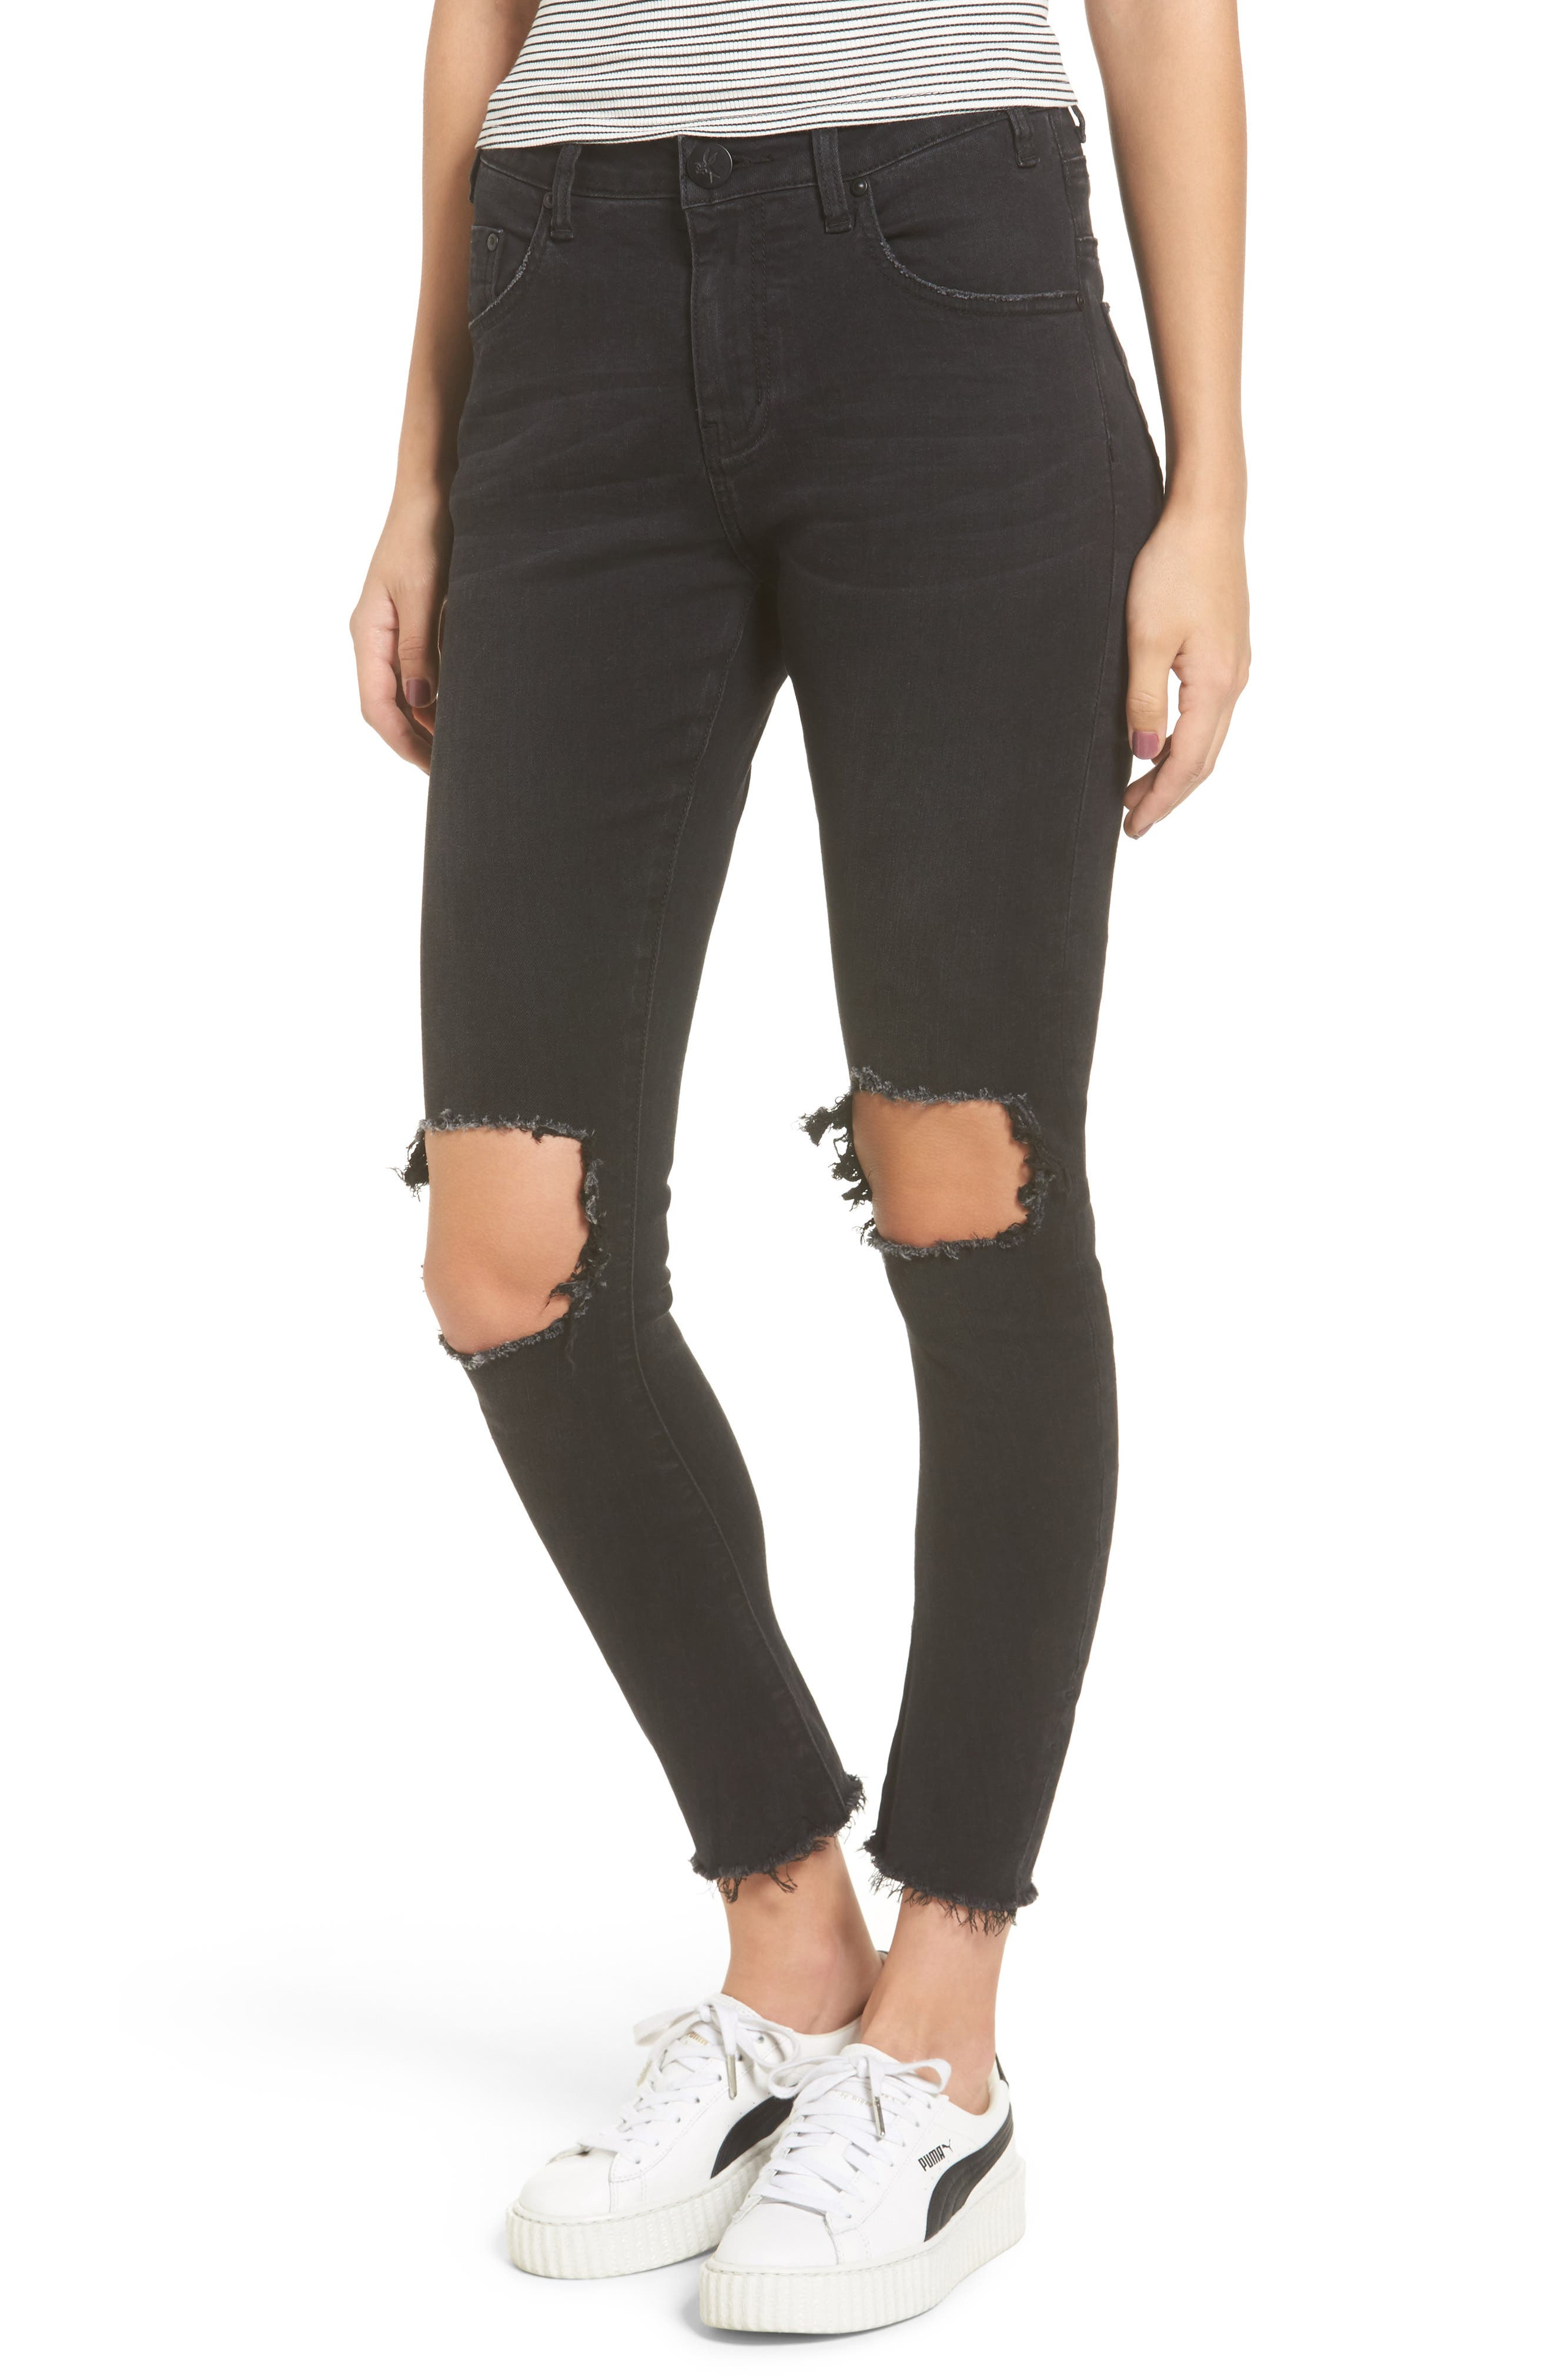 Main Image - One Teaspoon Freebirds Ripped High Waist Skinny Jeans (Black Punk)